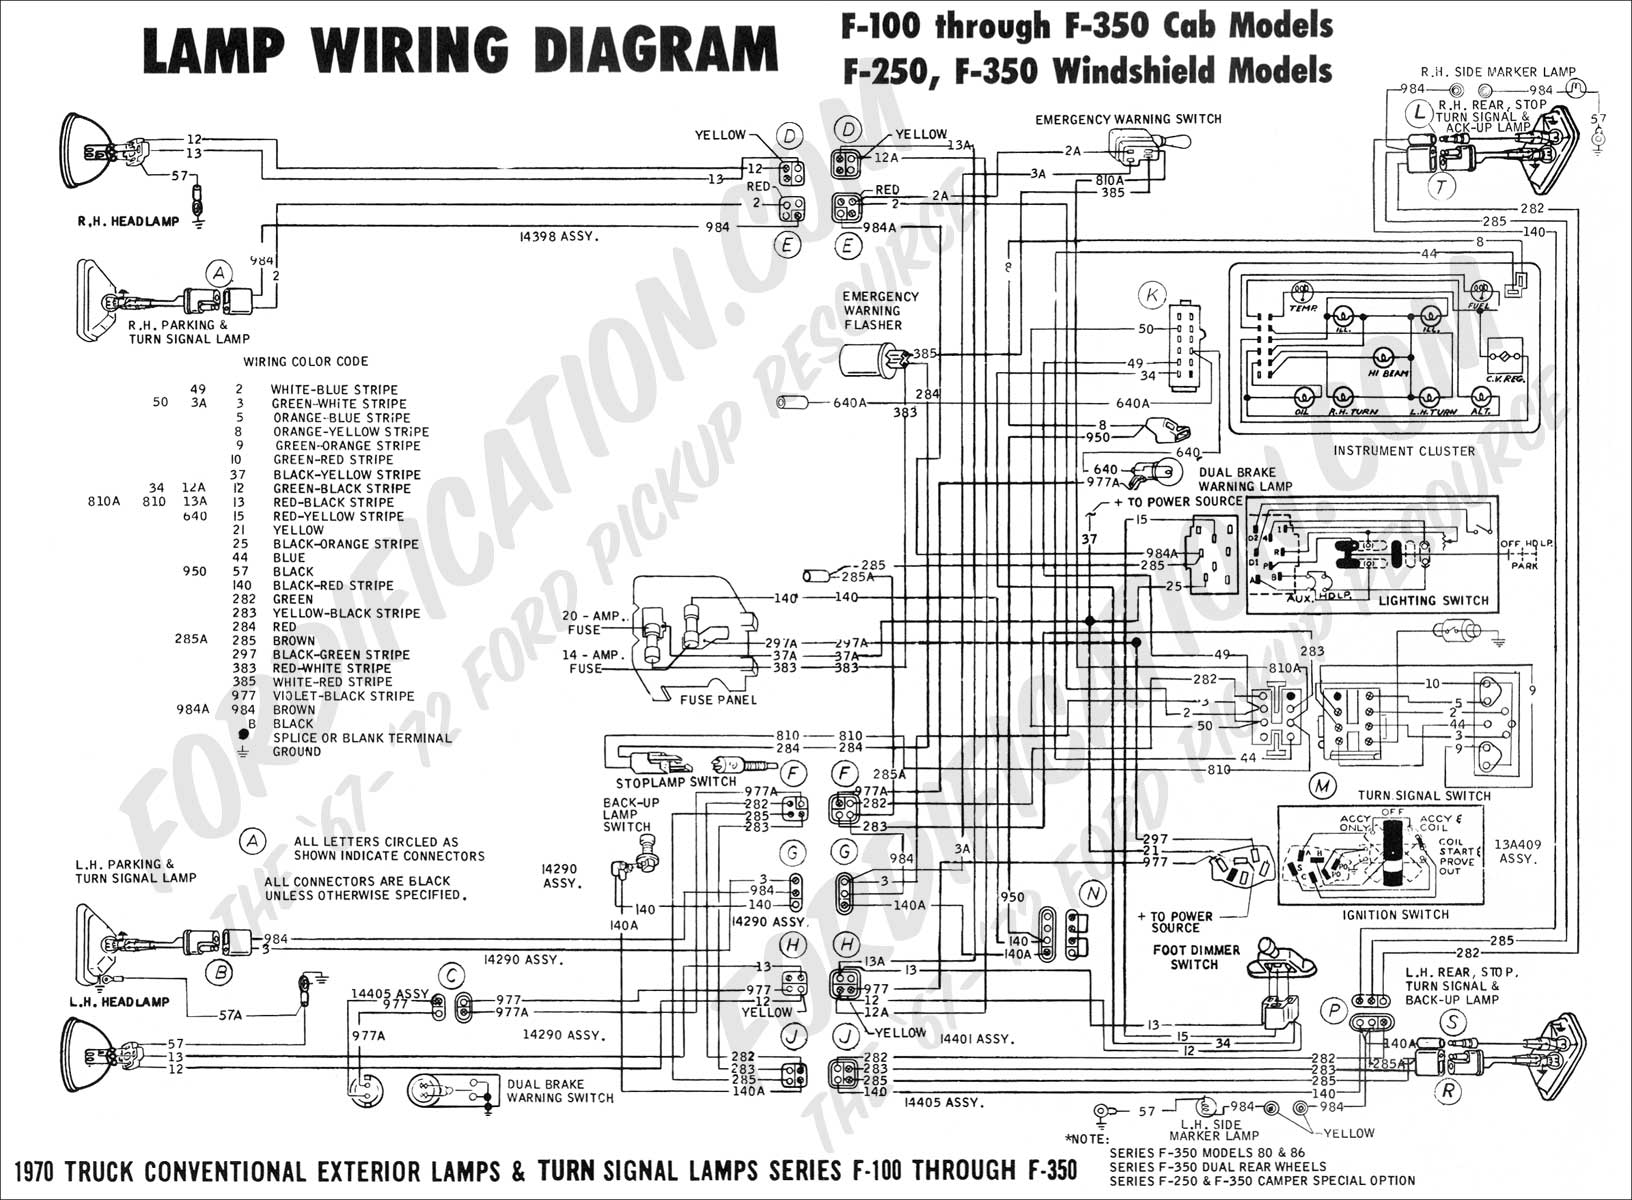 air horn wiring diagram switch with Schematics H on Wiring furthermore Dodge Caliber Wiring Diagram moreover 5cjy2 Need Car Fuse Box Diagrams 2008 Passat Please Help moreover 1966 Mustang Wiring Diagrams also RepairGuideContent.